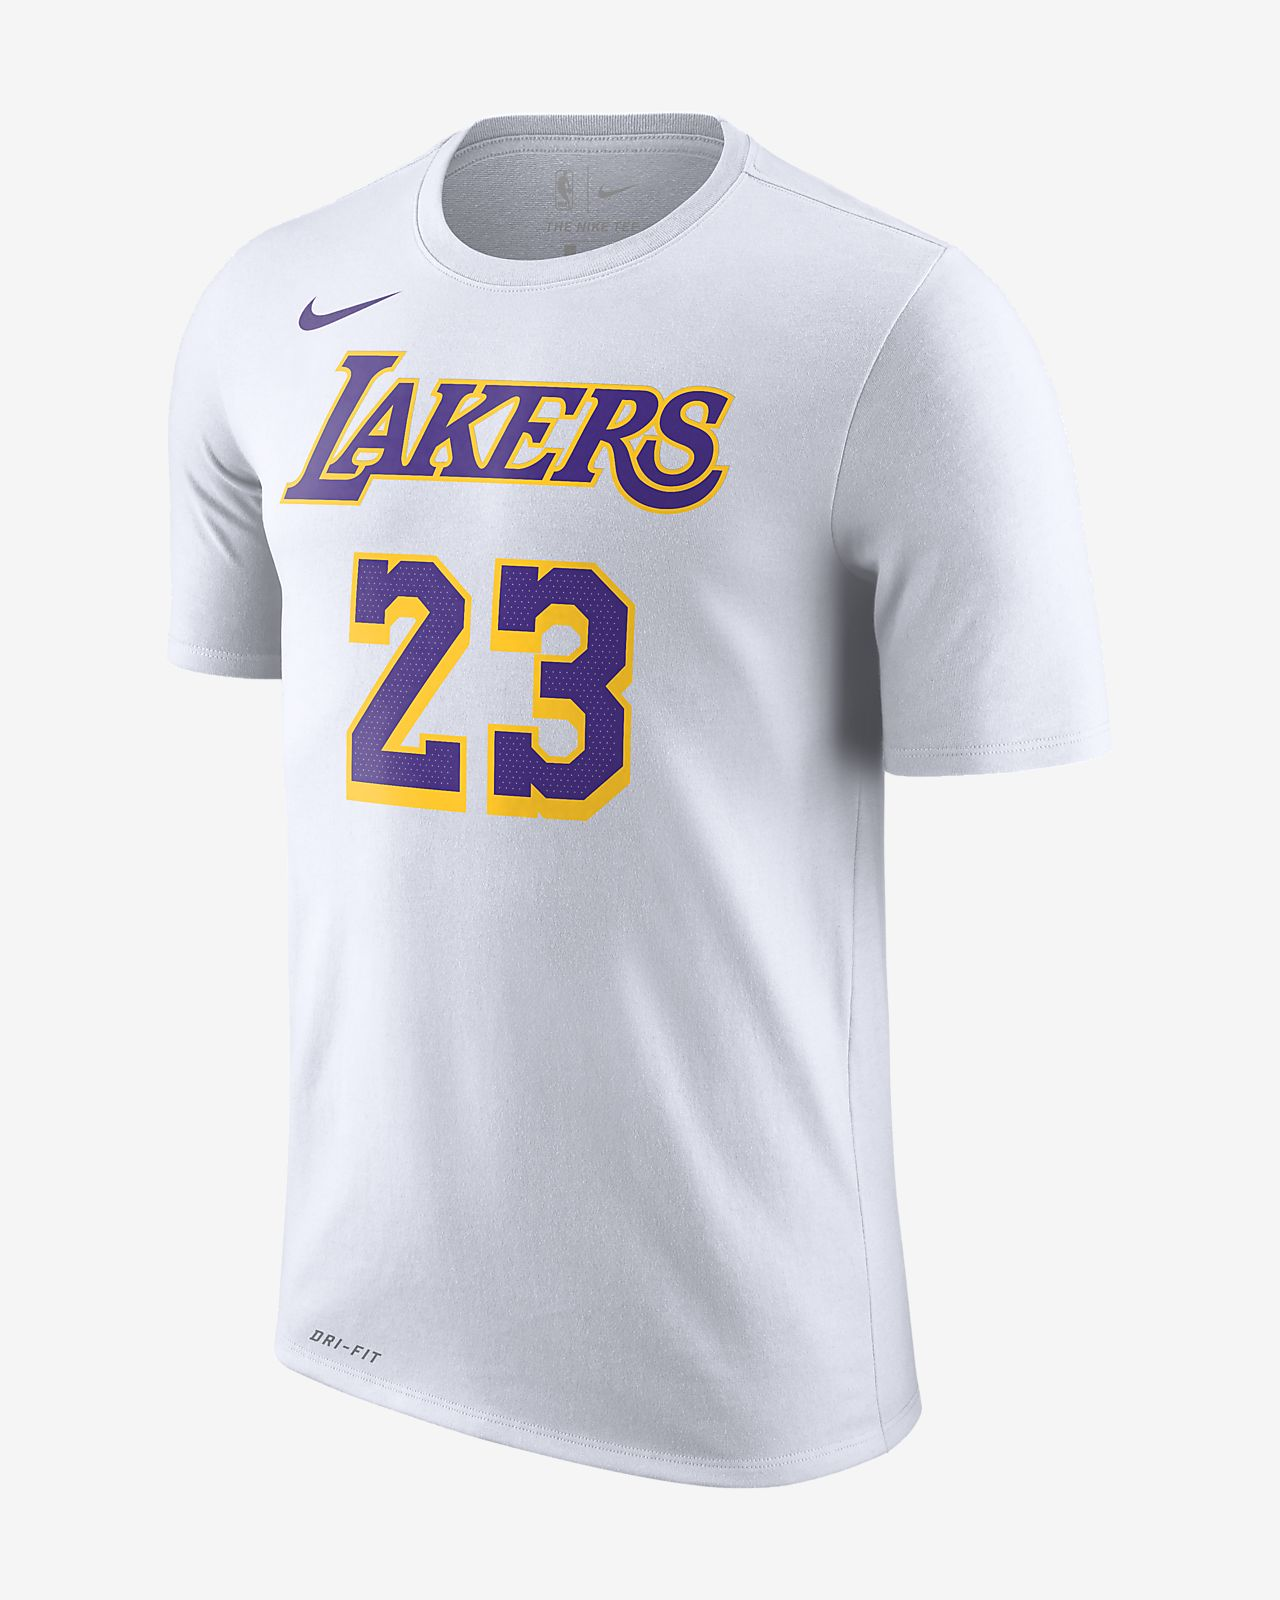 Los Angeles Lakers Nike Dri-FIT NBA T-shirt